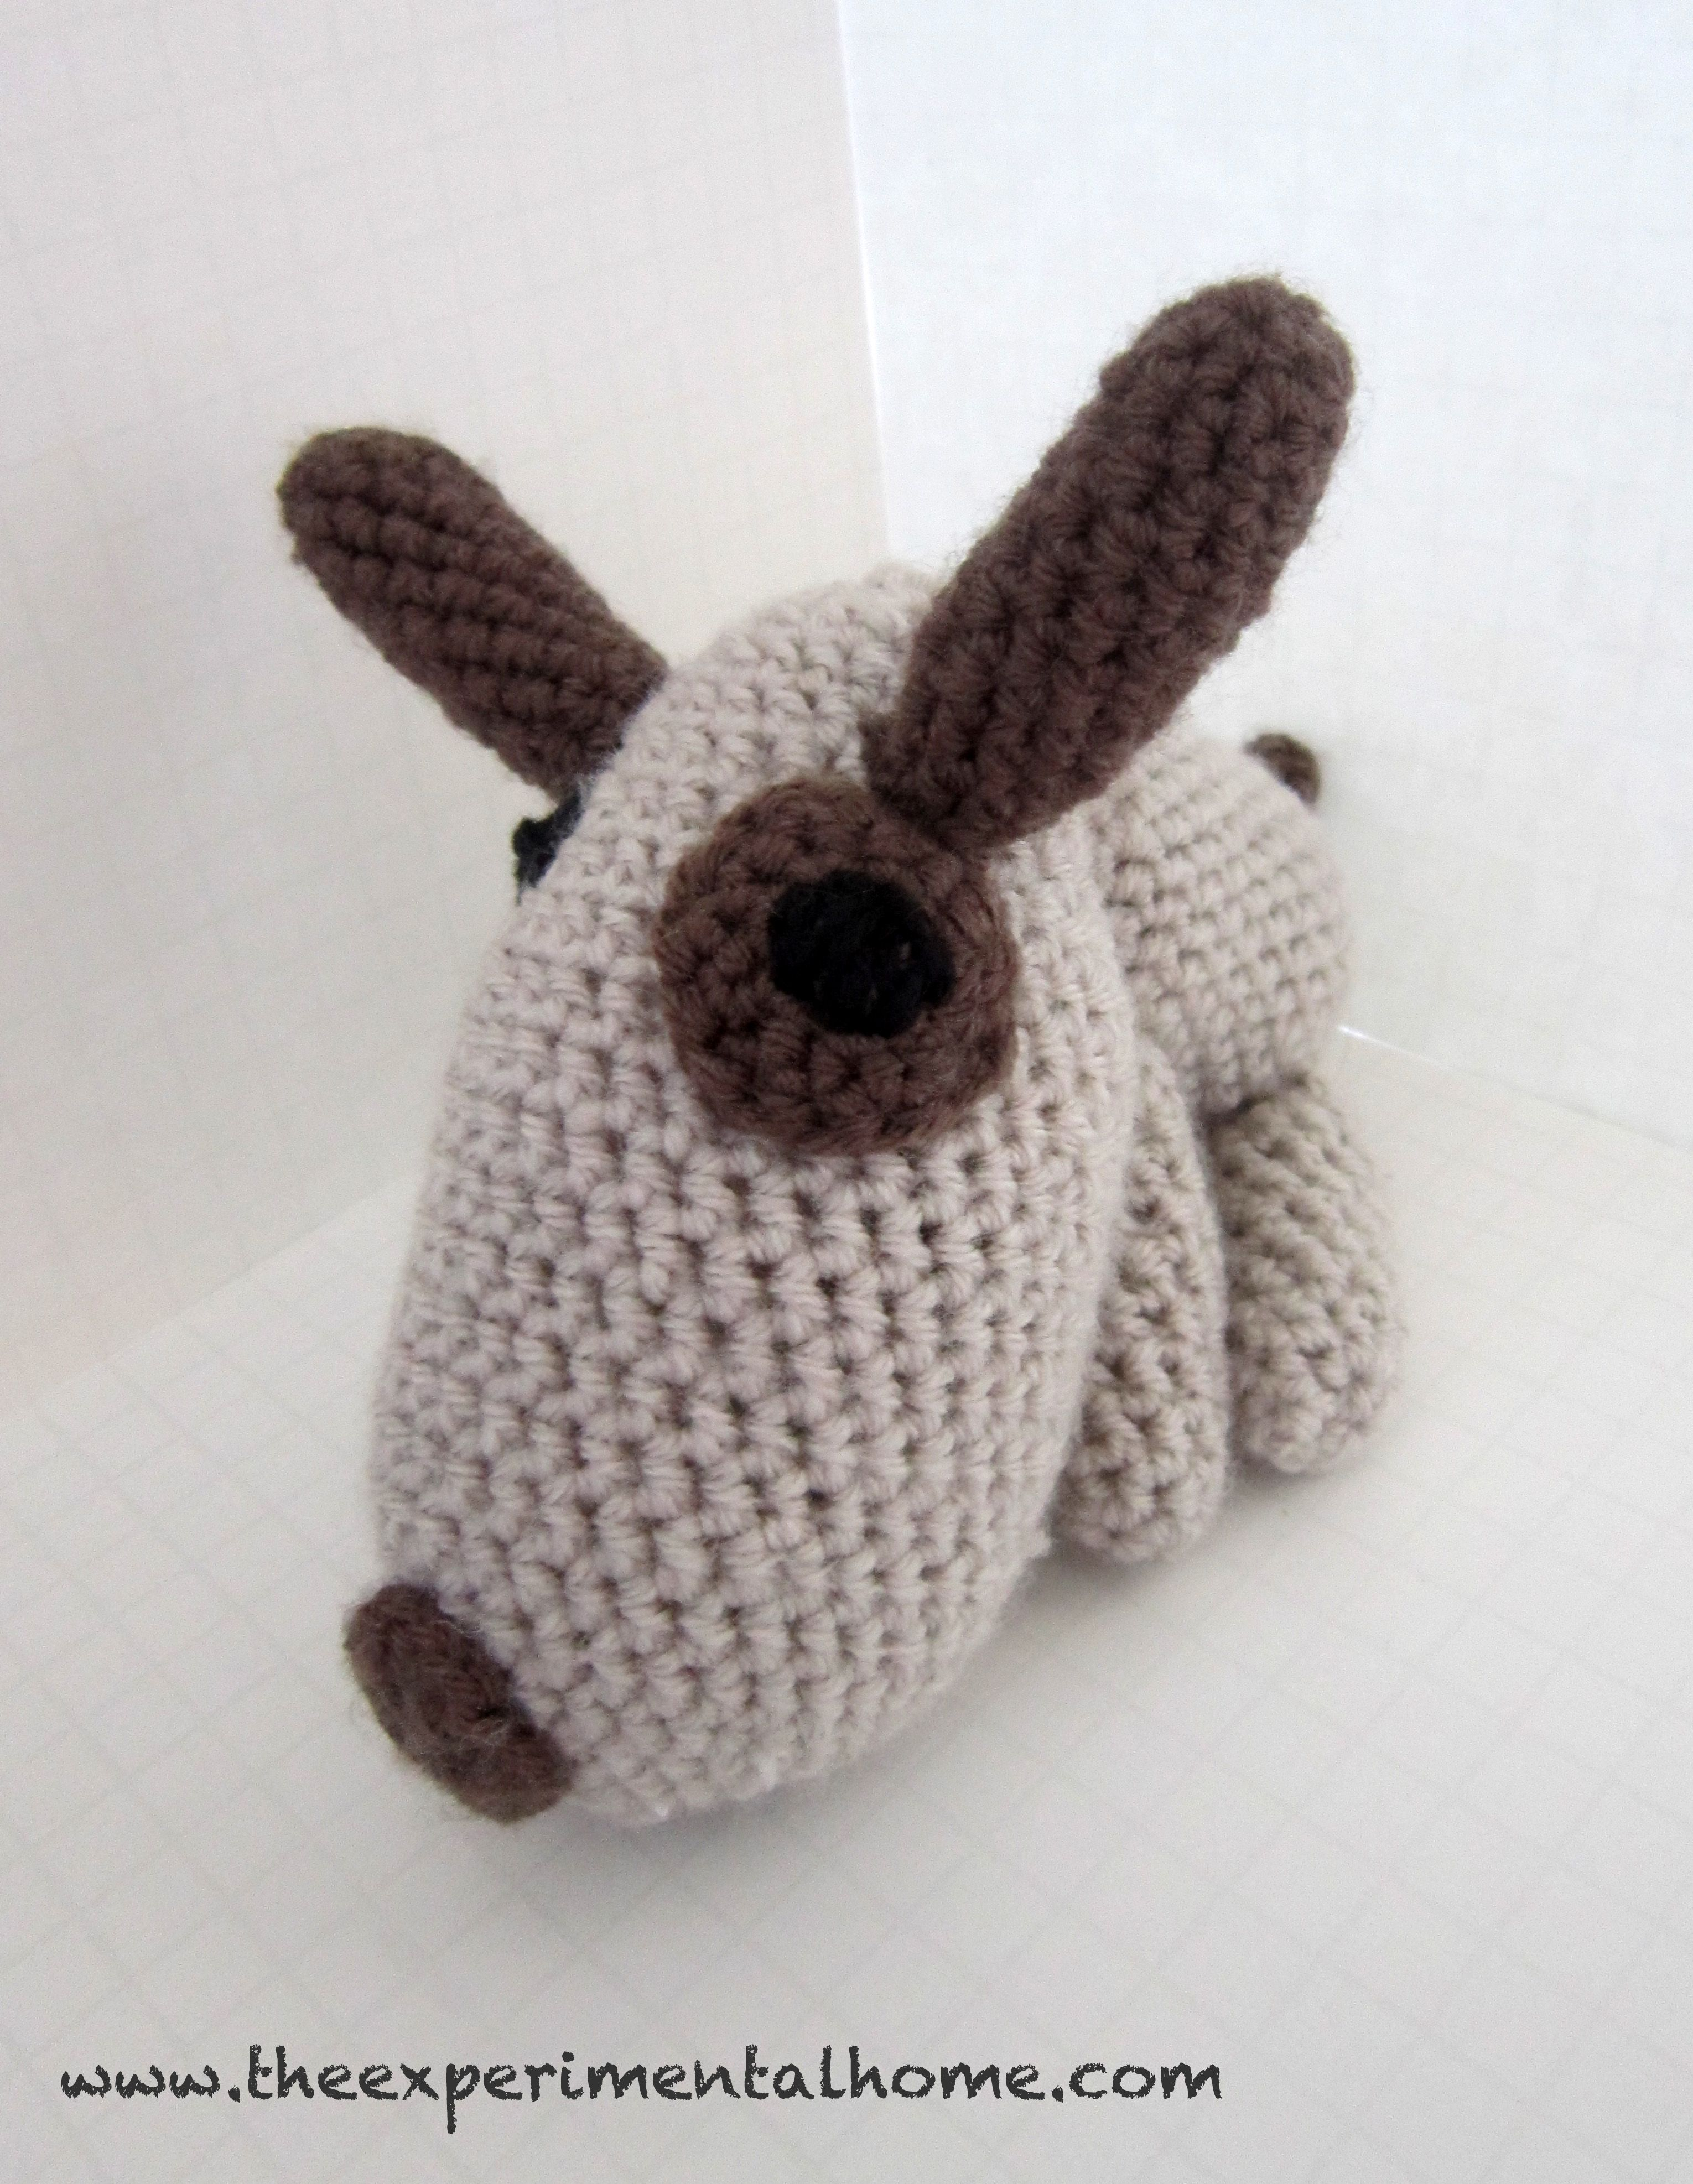 Crocheted dog | Source: The Experimental Home, pattern source: Amigurumi World: Seriously Cute Crochet (book) | #crochet #craft #toys